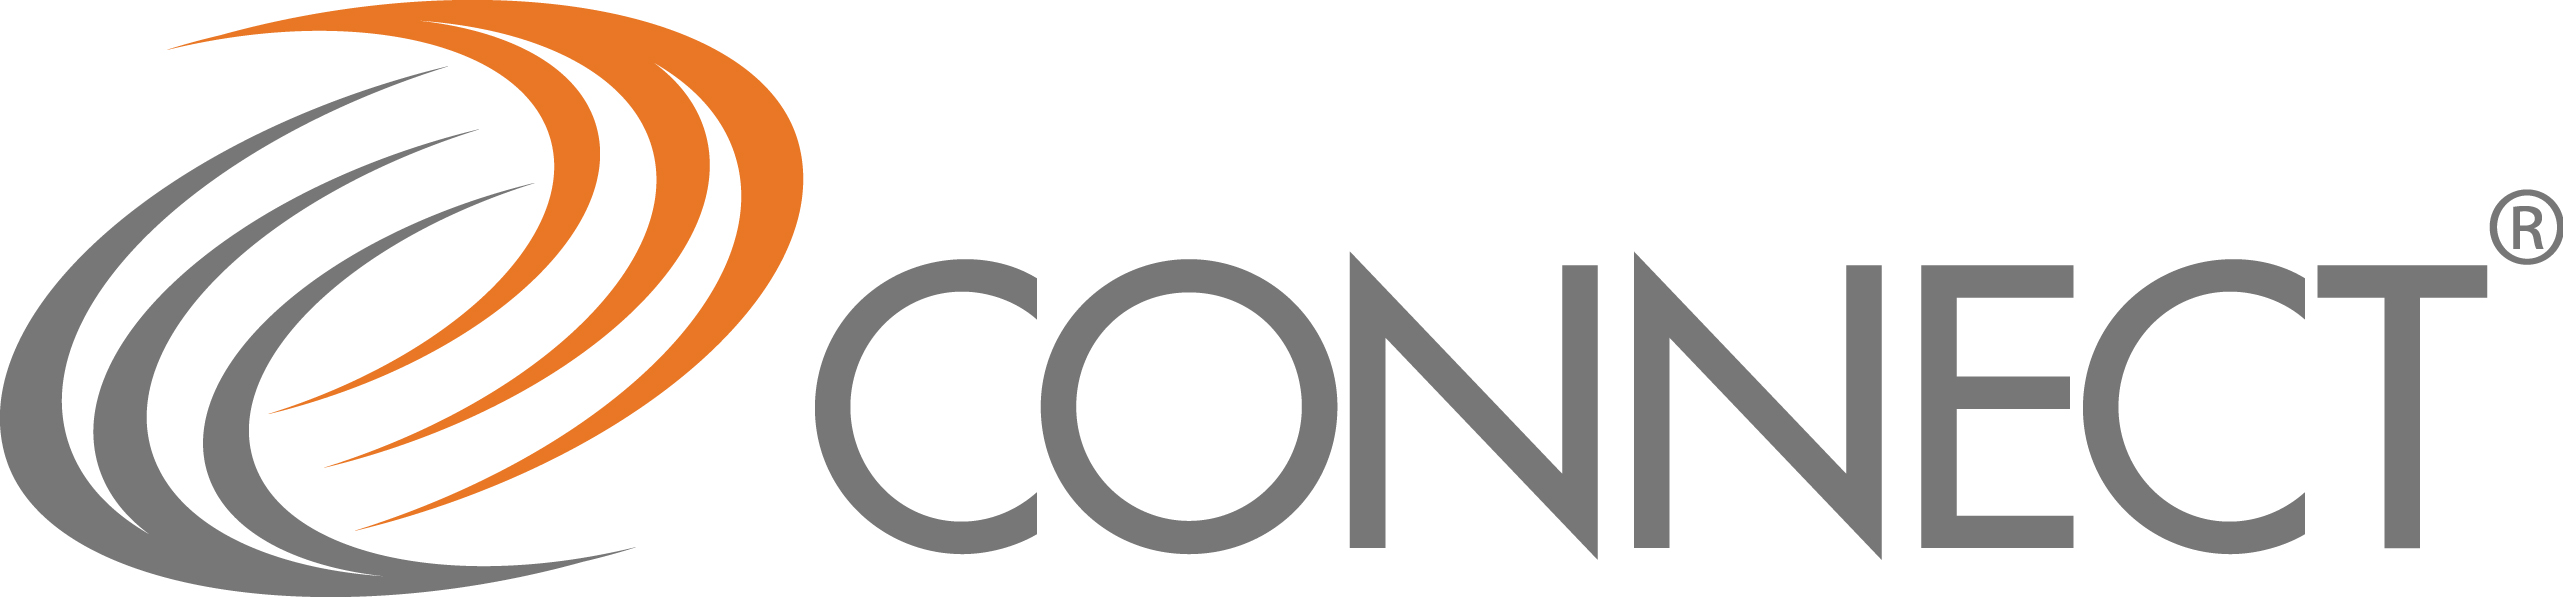 connect_logo_hires.jpg